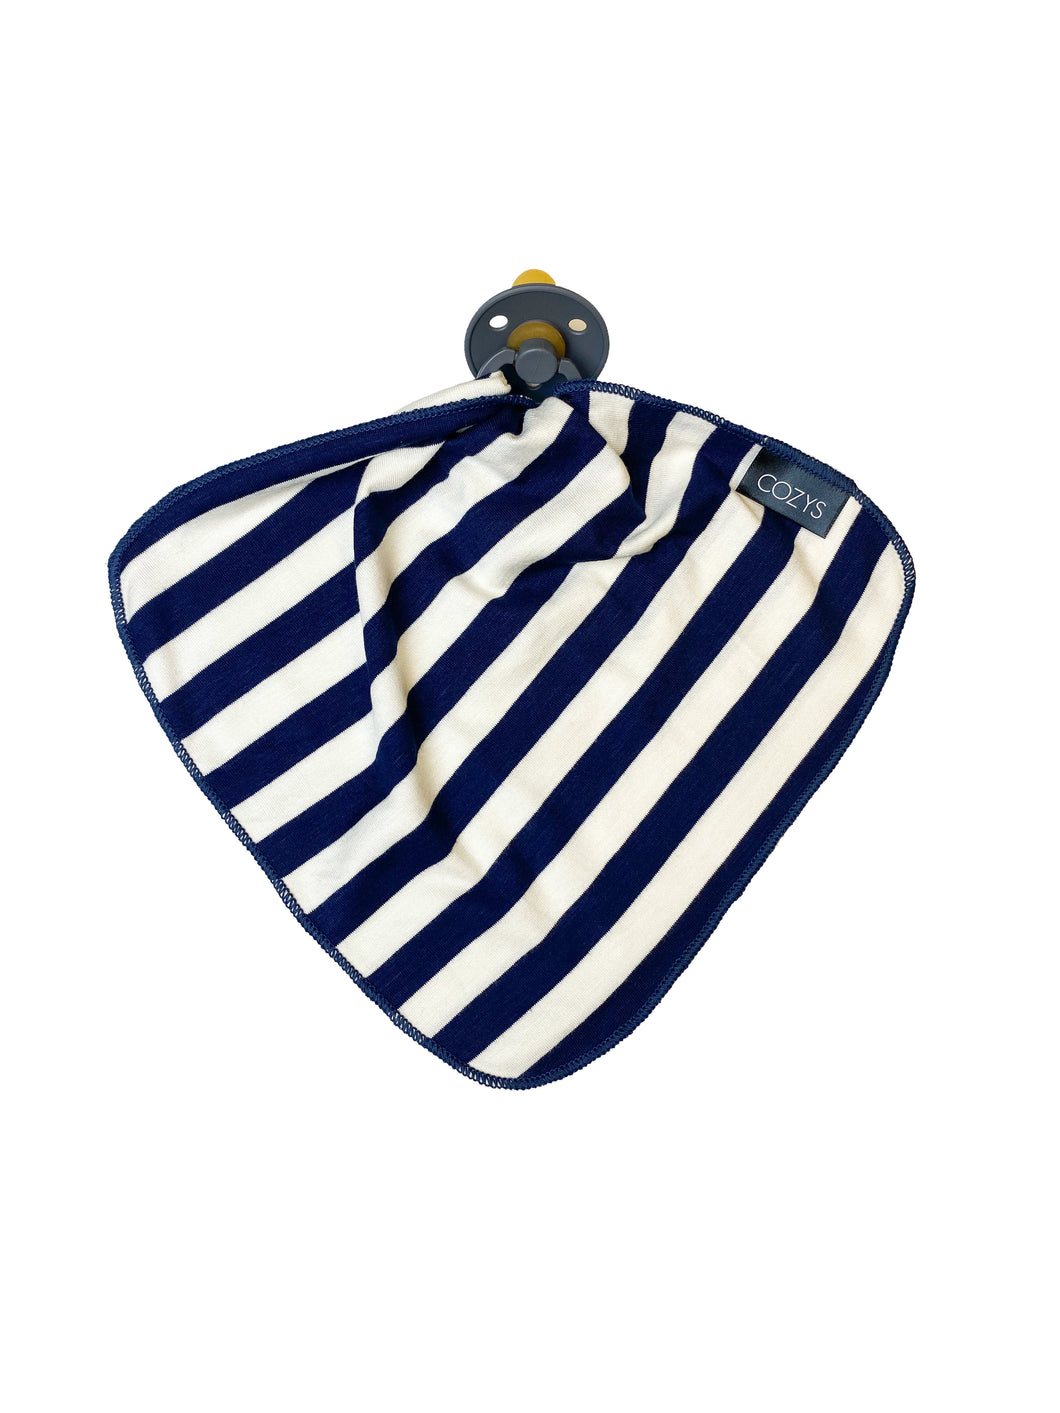 LOVIE - NAVY + WHITE STRIPE